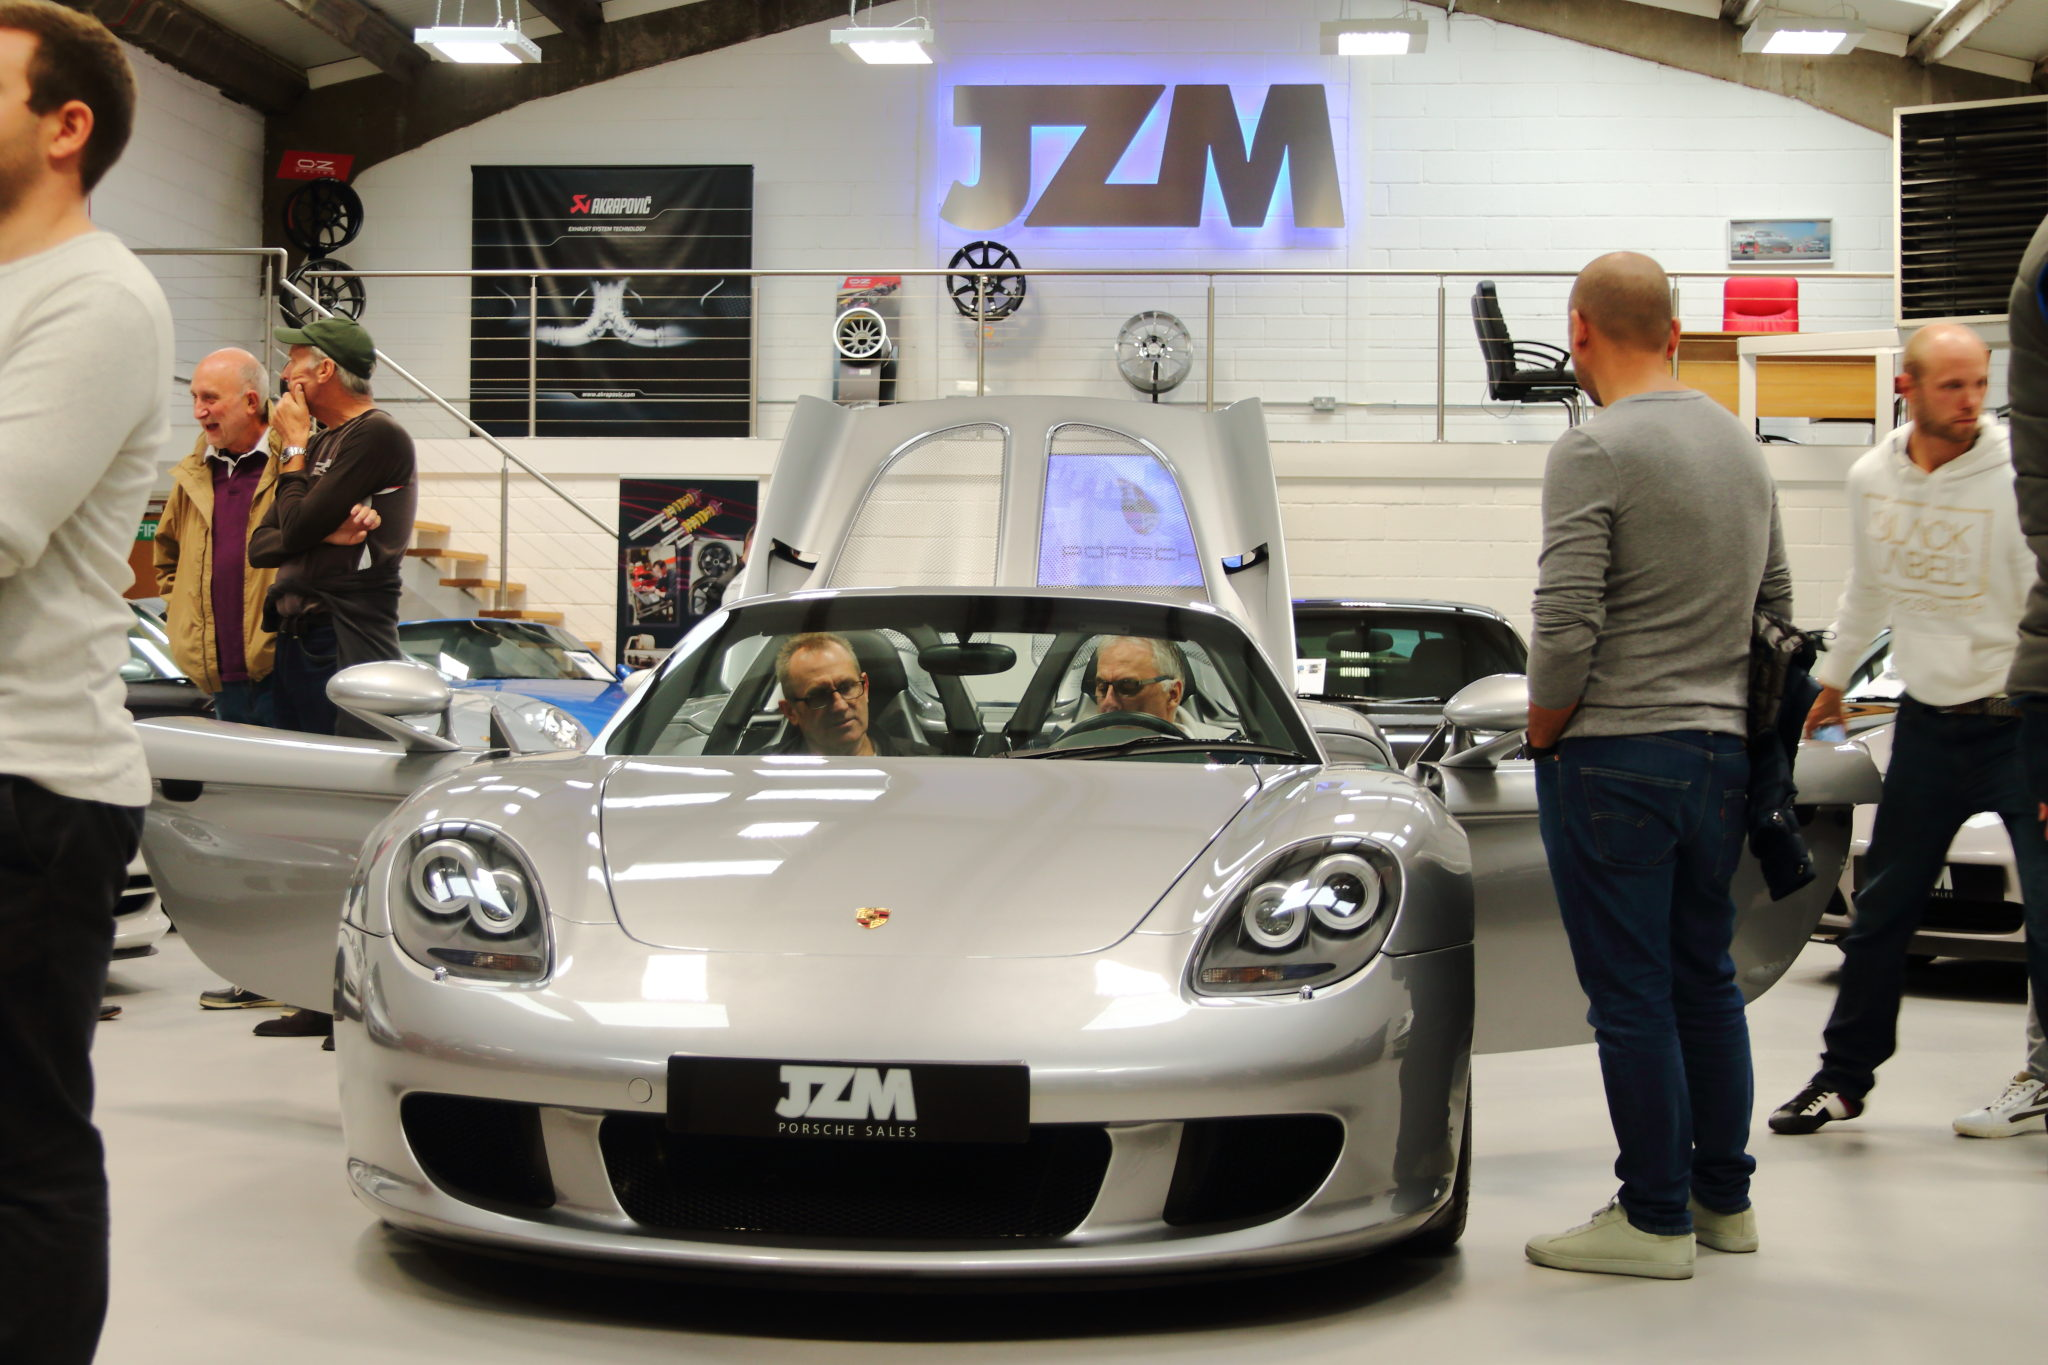 Coffee Morning at JZM Porsche